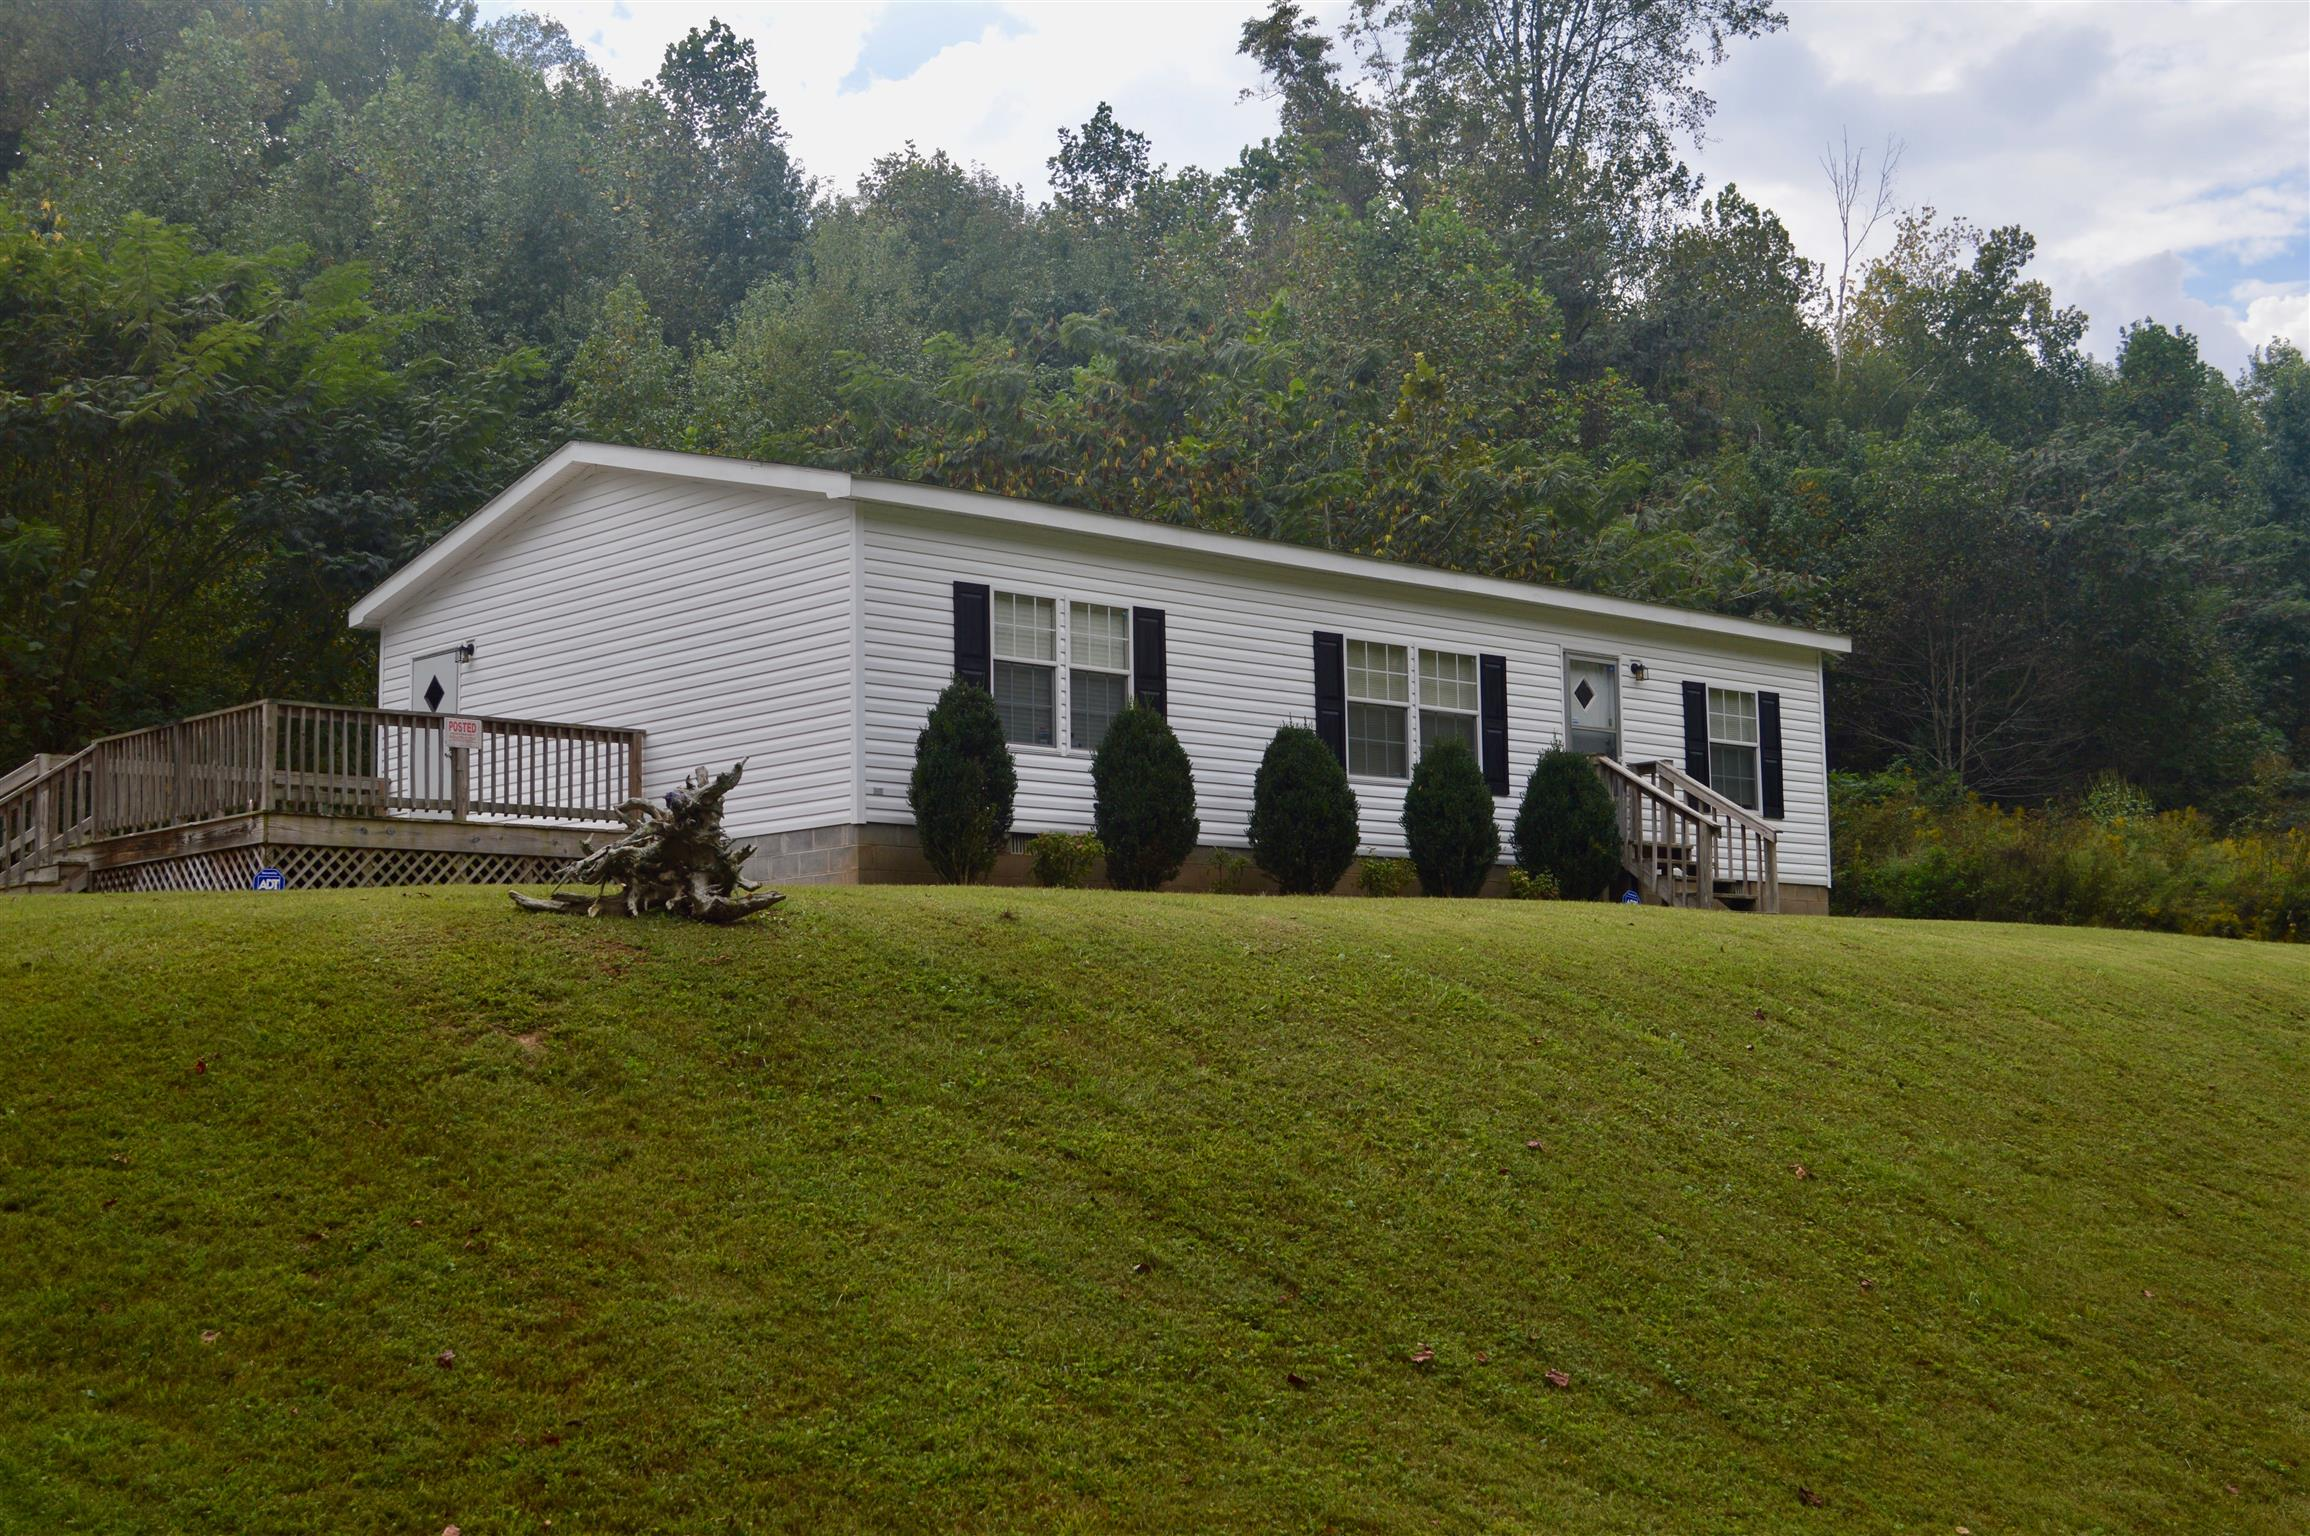 607 Sugartree Springs Rd, Belvidere, TN 37306 - Belvidere, TN real estate listing